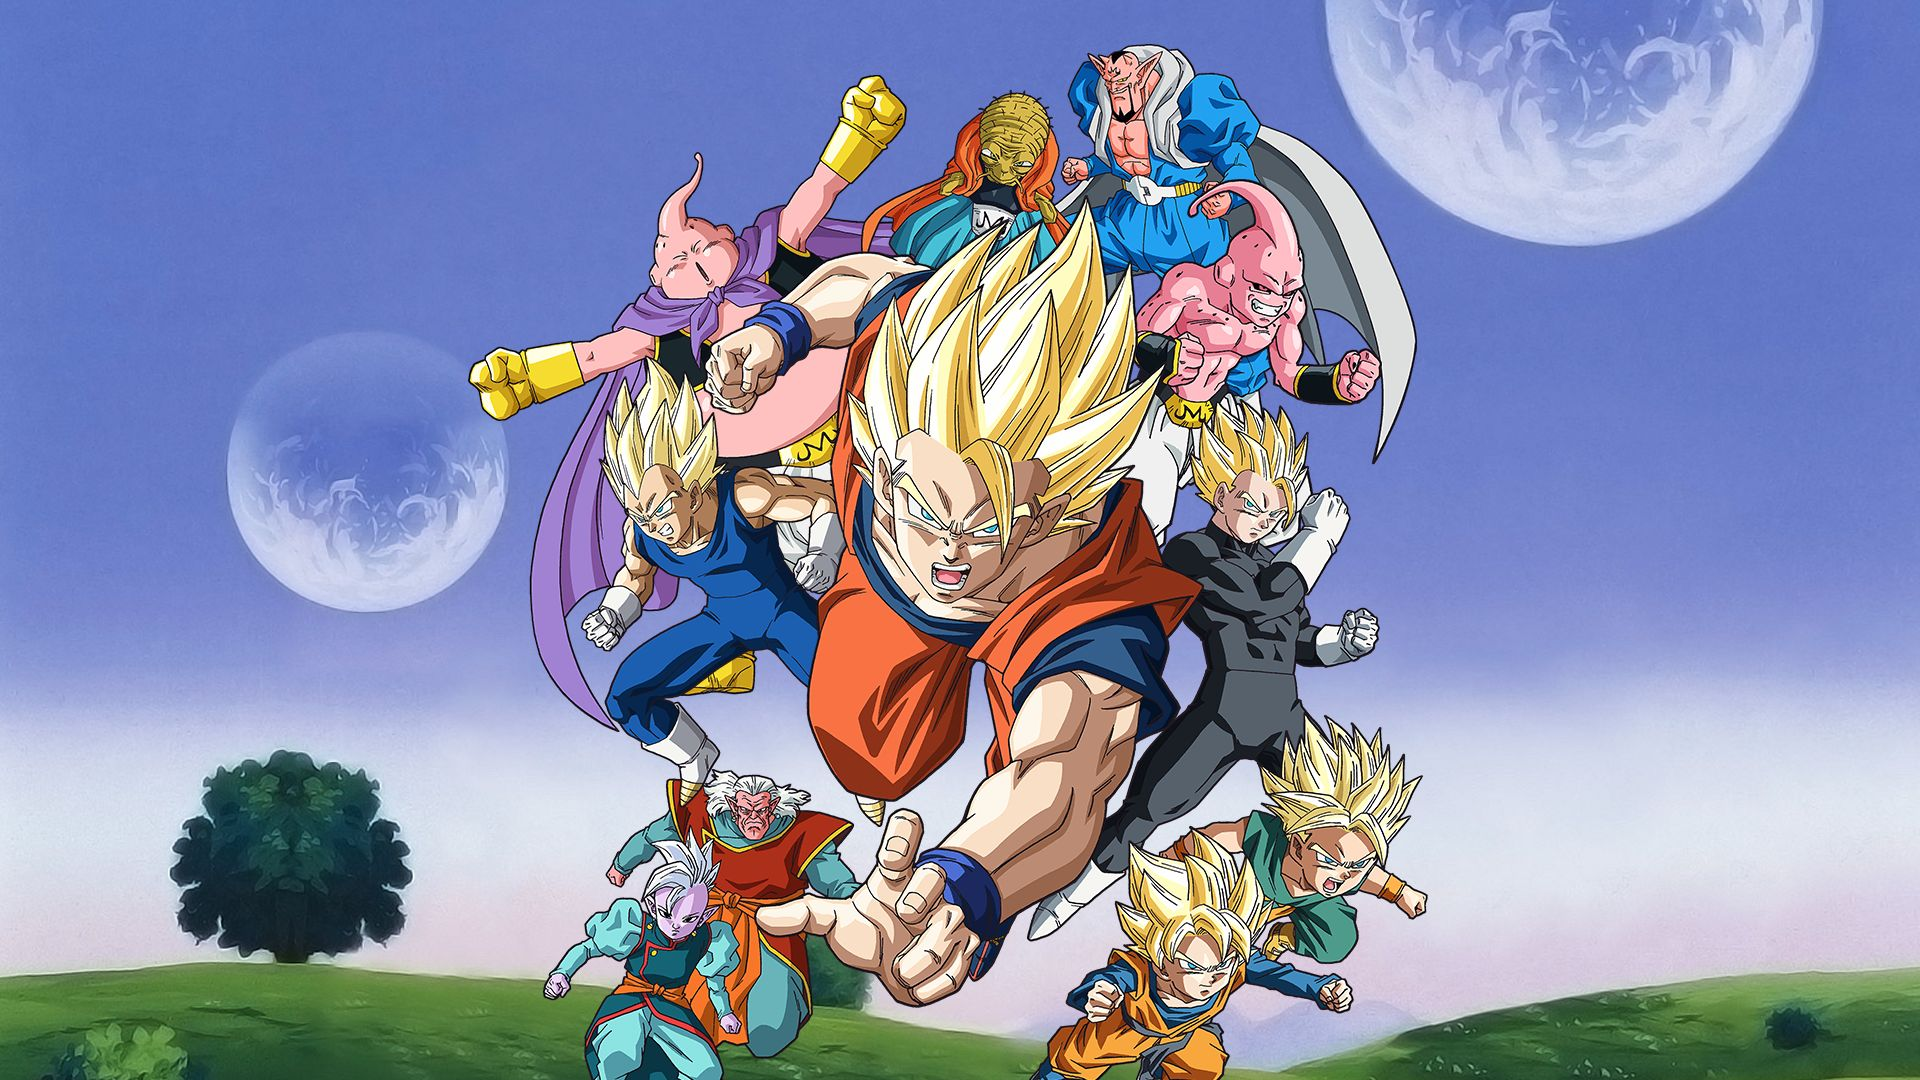 Super Hd Wallpapers Dragon Ball Super Cover Photo Hd Wallpaper